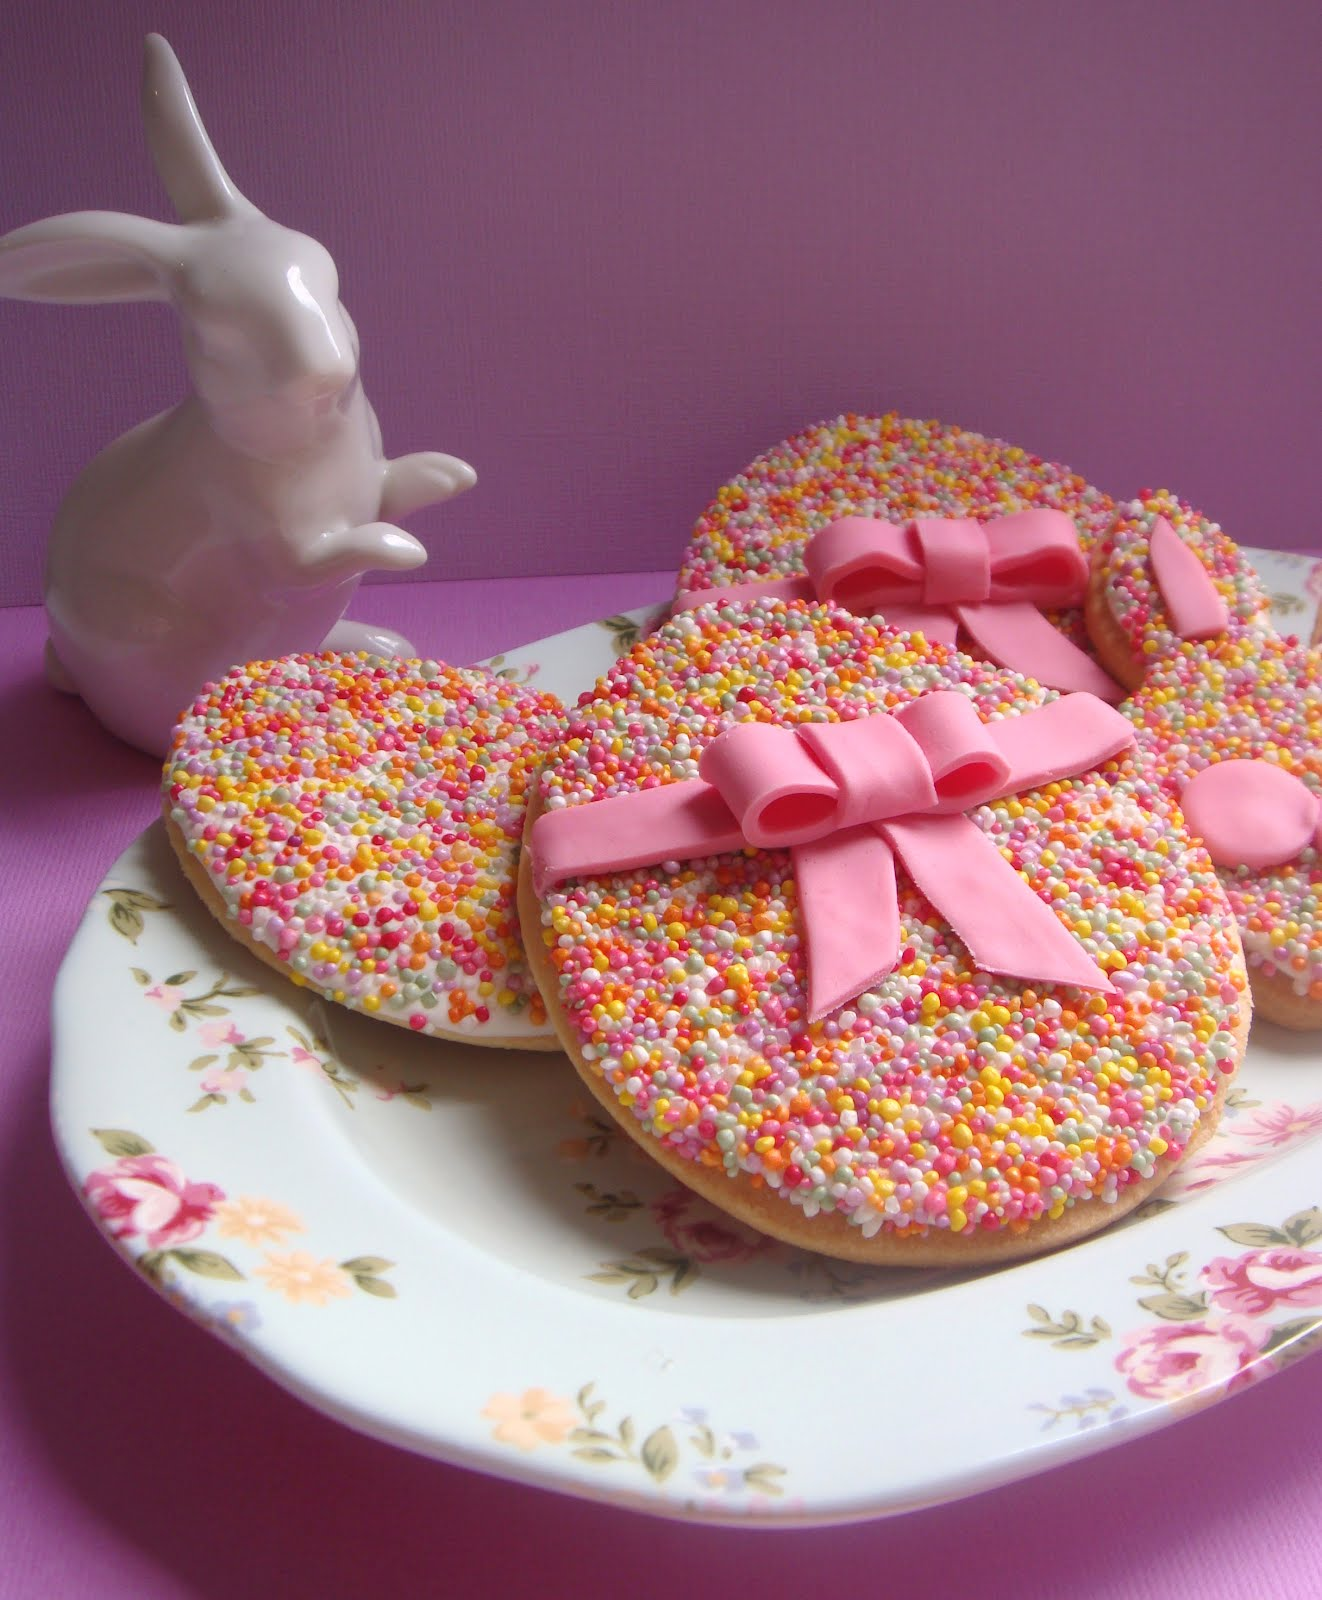 View these Easter Cookies Decorating Ideas, colorful egg Easter Sunday cookies, Easter Bunny cookies, colored Easter cookies,easy to make and full of fun. What others are saying